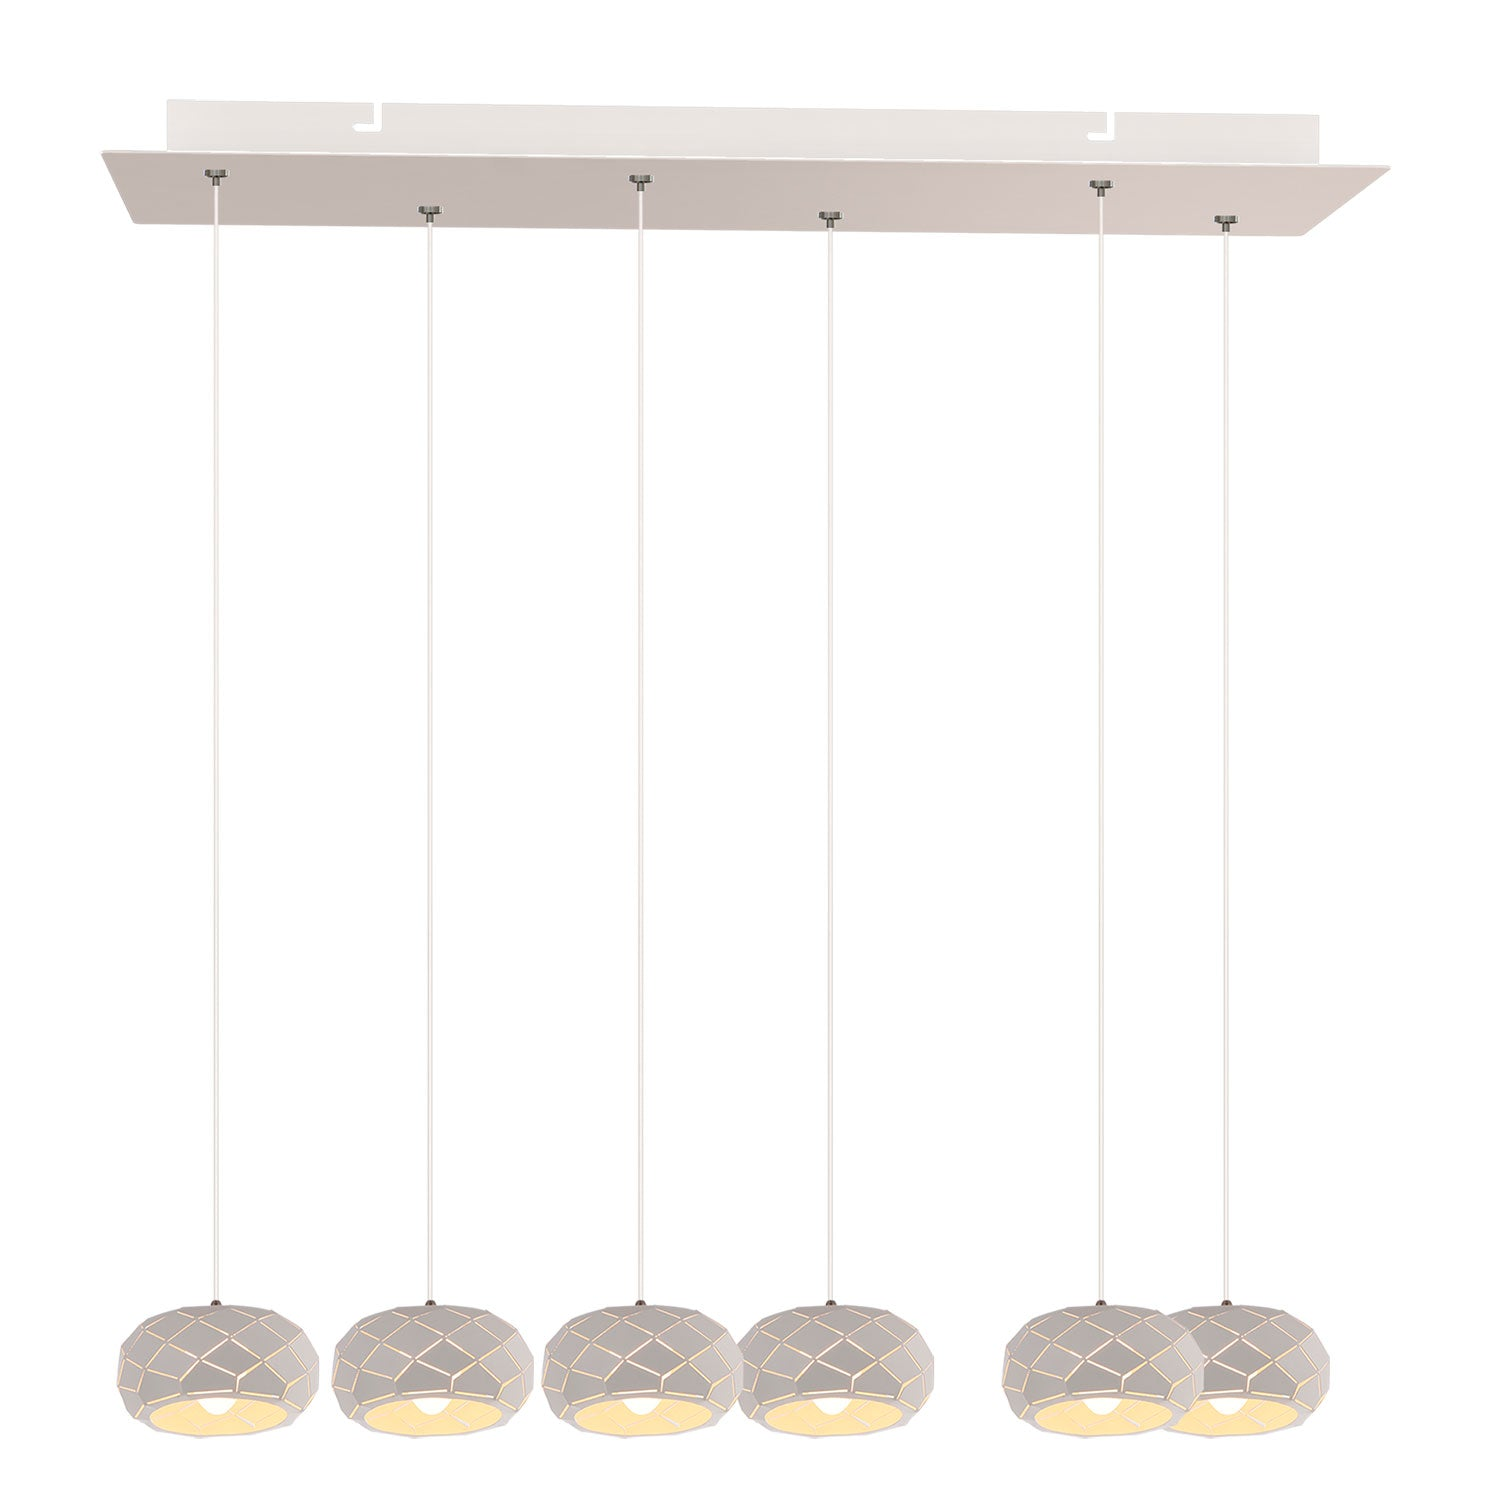 Crust 6-light LED mini pendant